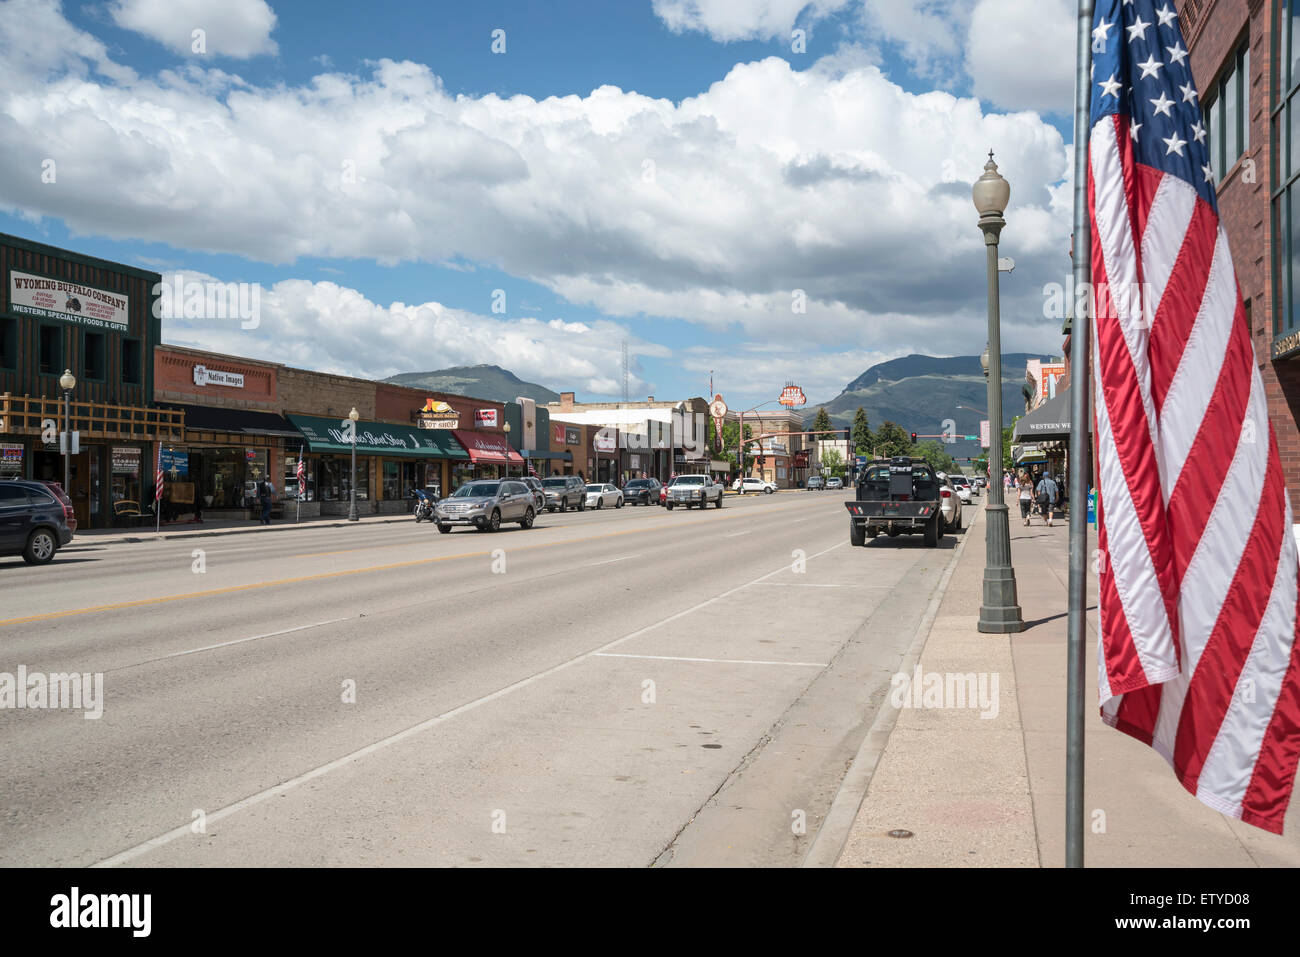 Main street and American flag, Cody, Wyoming, United States,  North America, USA - Stock Image